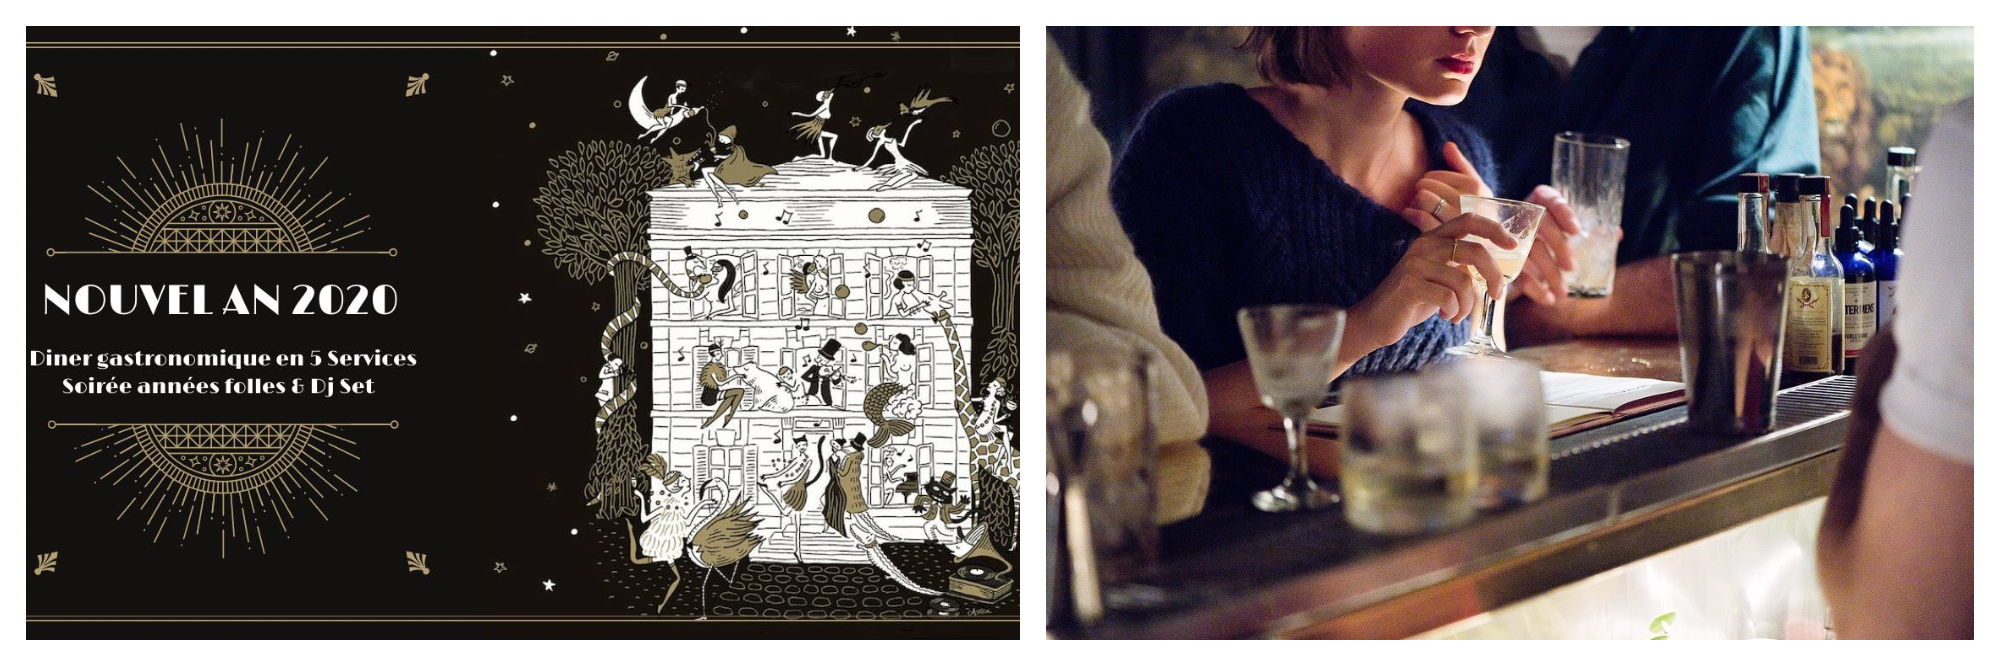 A promotional poster for the Nouvel An 2020 event at Hotel Particulier (left). A woman ordering a drink at a bar (right).